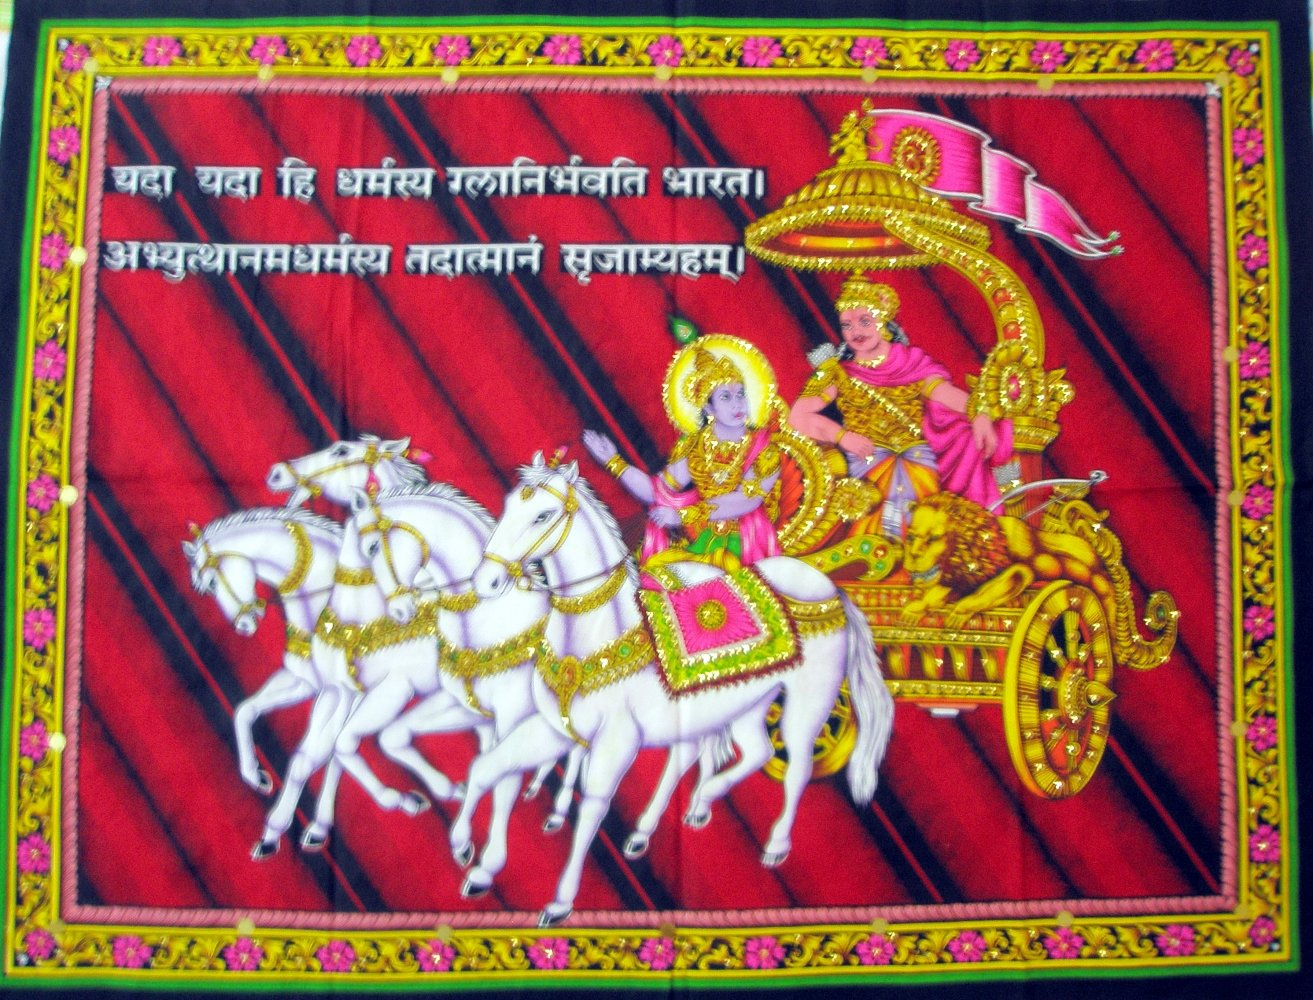 Lord Krishna & Arjuna  Mahabharata Gita Wall Hanging Sequin Hindu Tapestry India Ethnic Home Decor